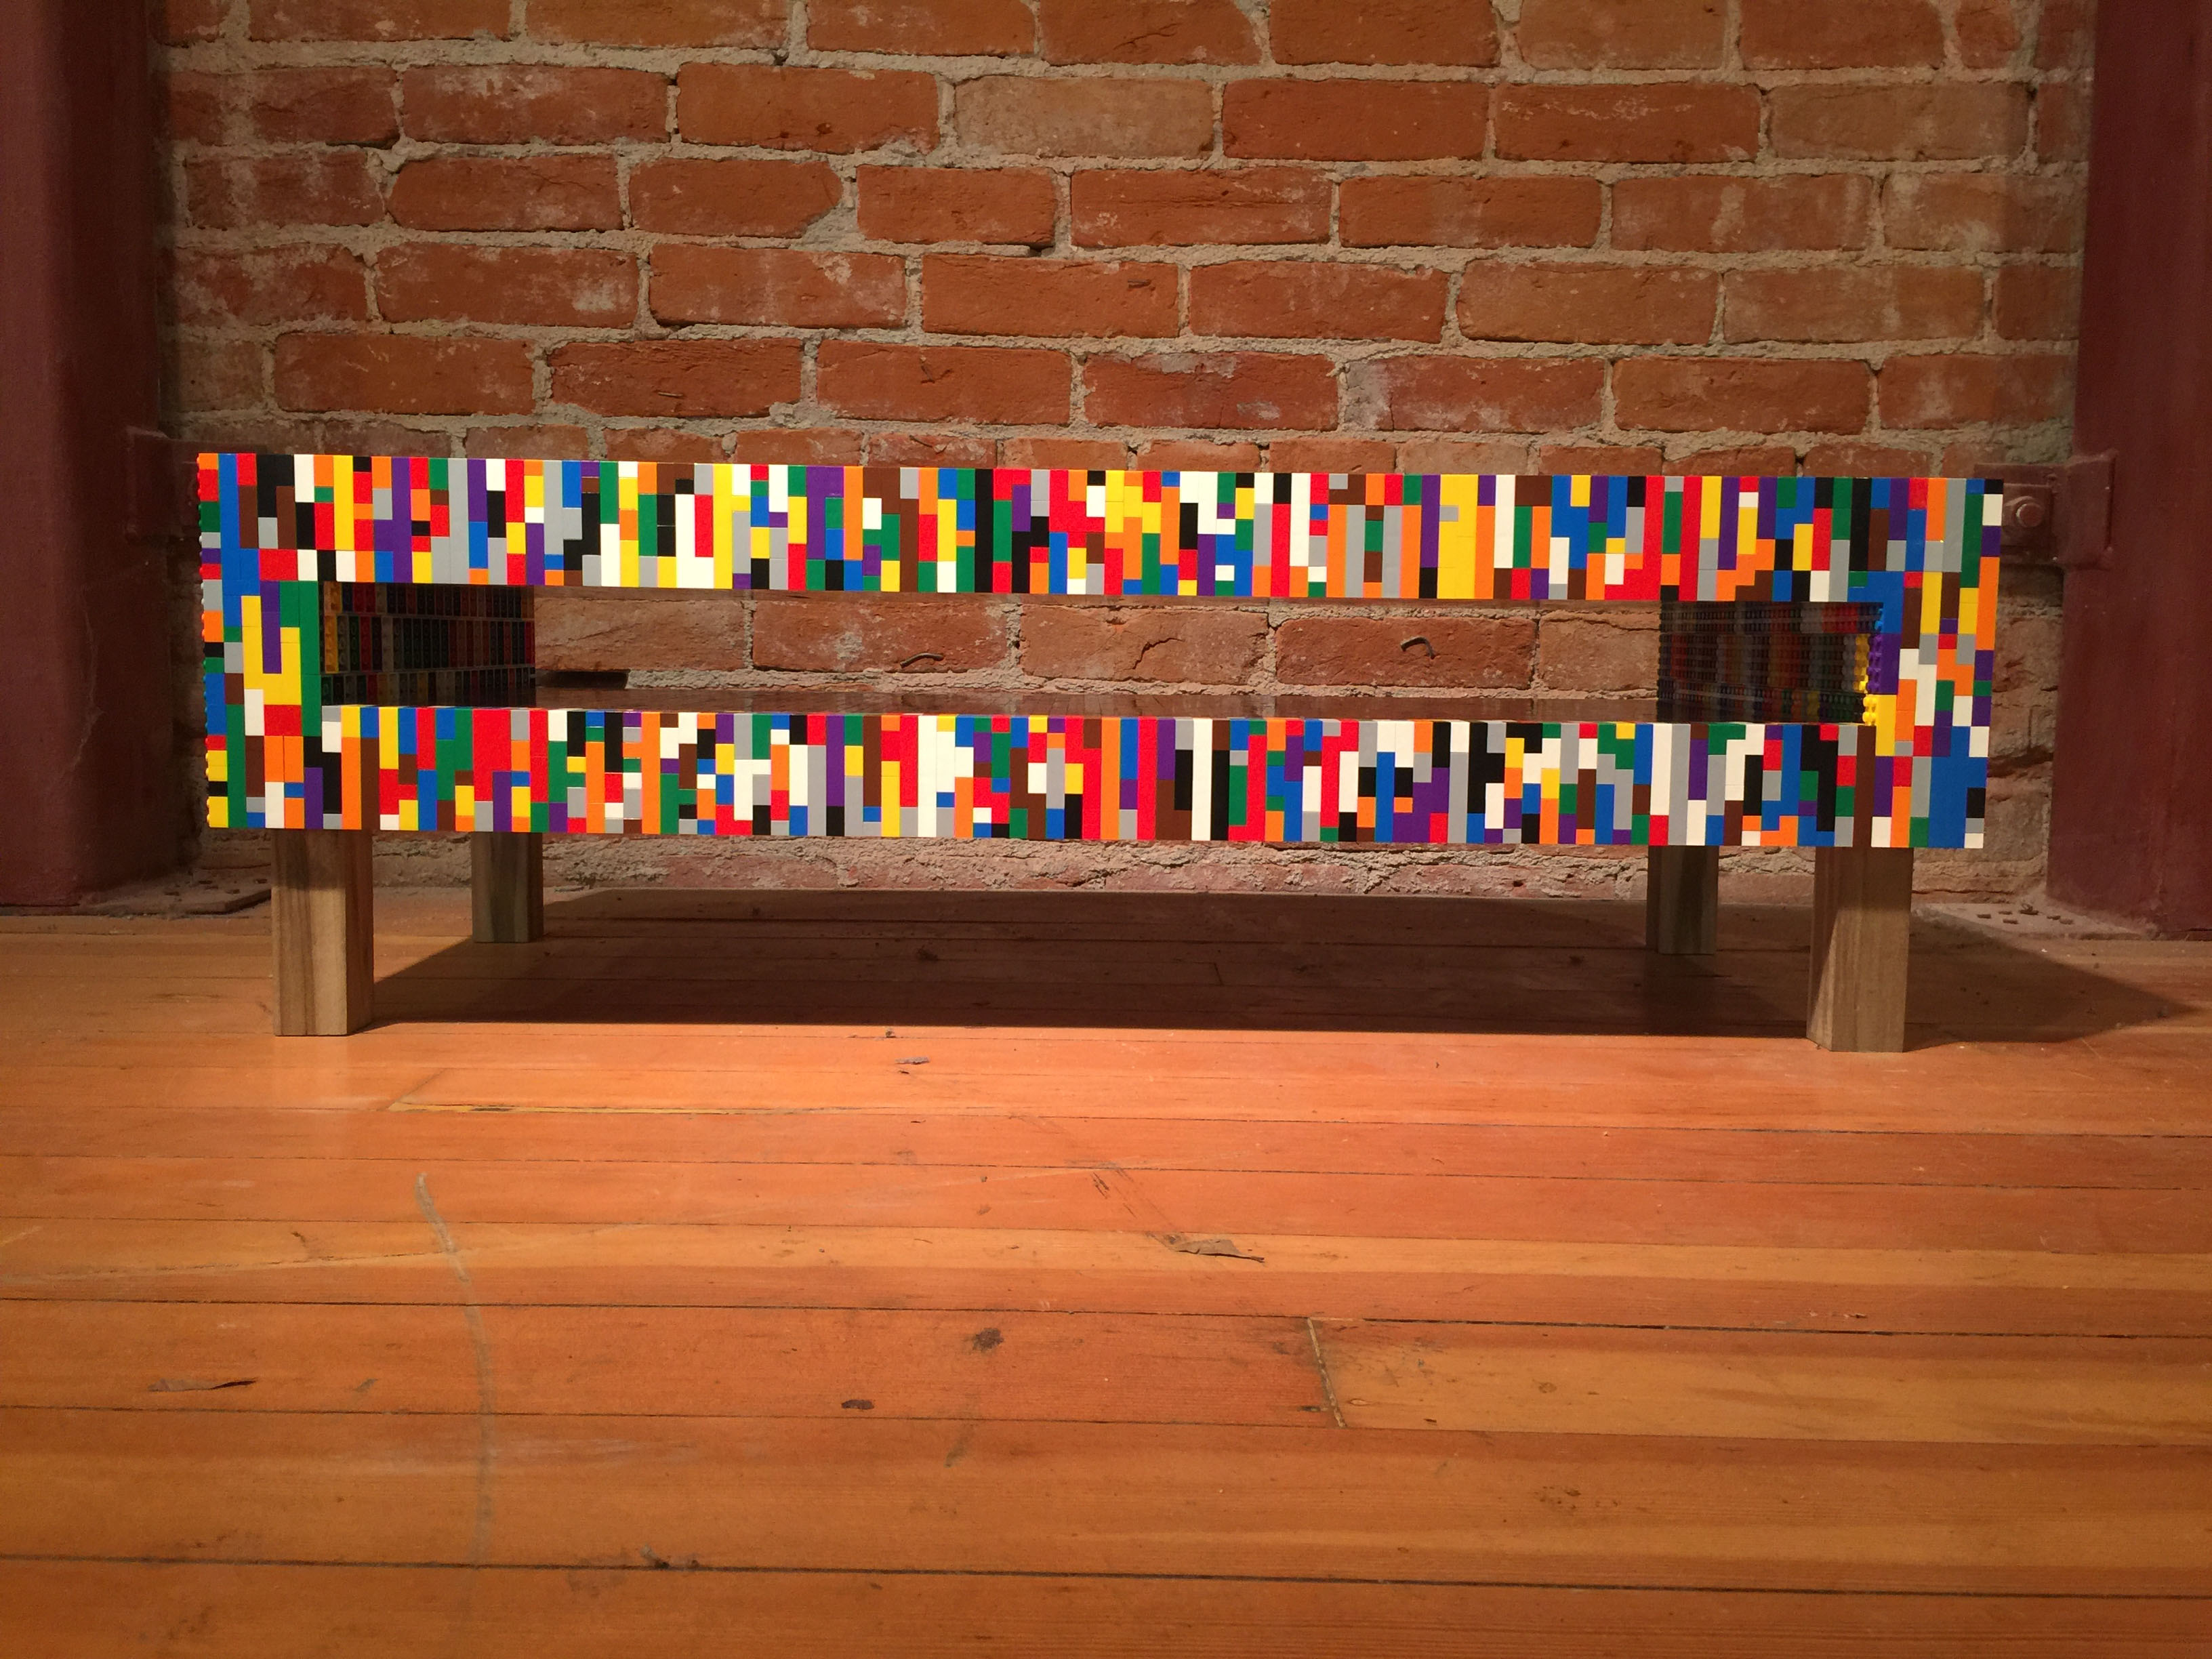 Lego coffee table by Moore + Prendergast